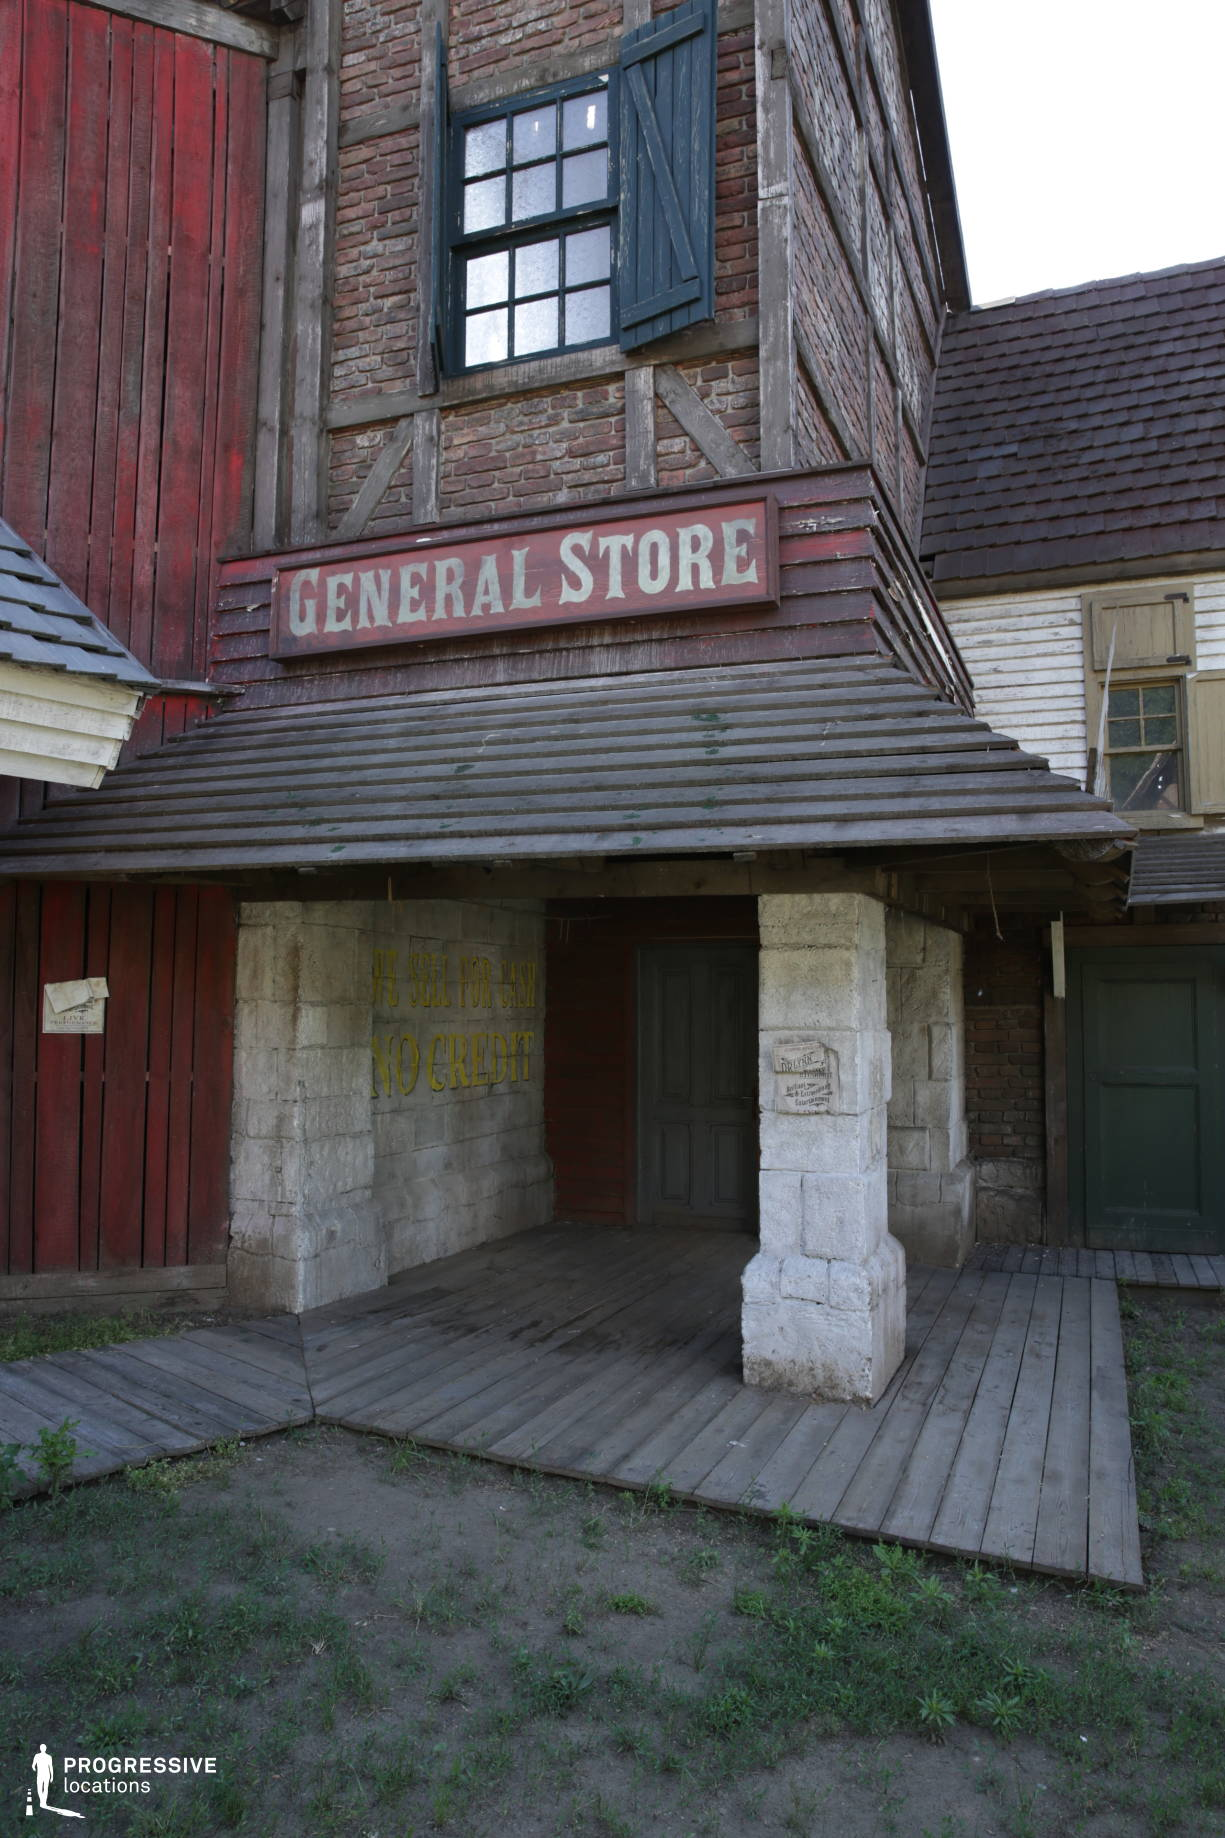 Western Town Backlot: General Store